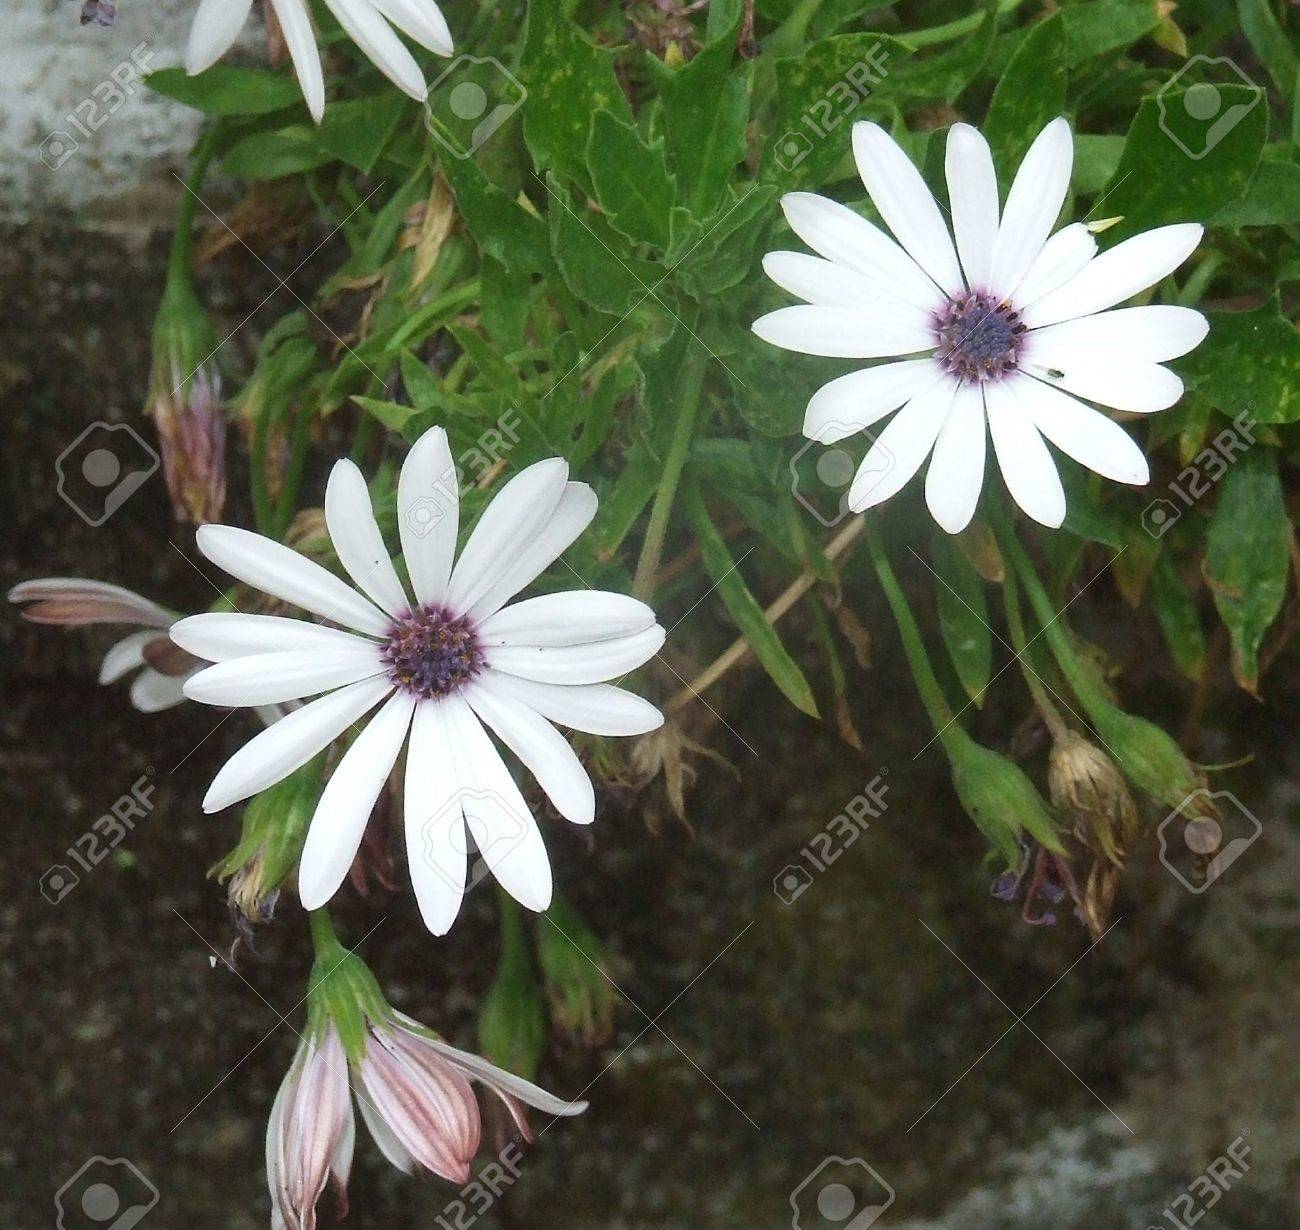 Flowers similar to daisies but with violet steams stock photo flowers similar to daisies but with violet steams stock photo 961109 izmirmasajfo Choice Image